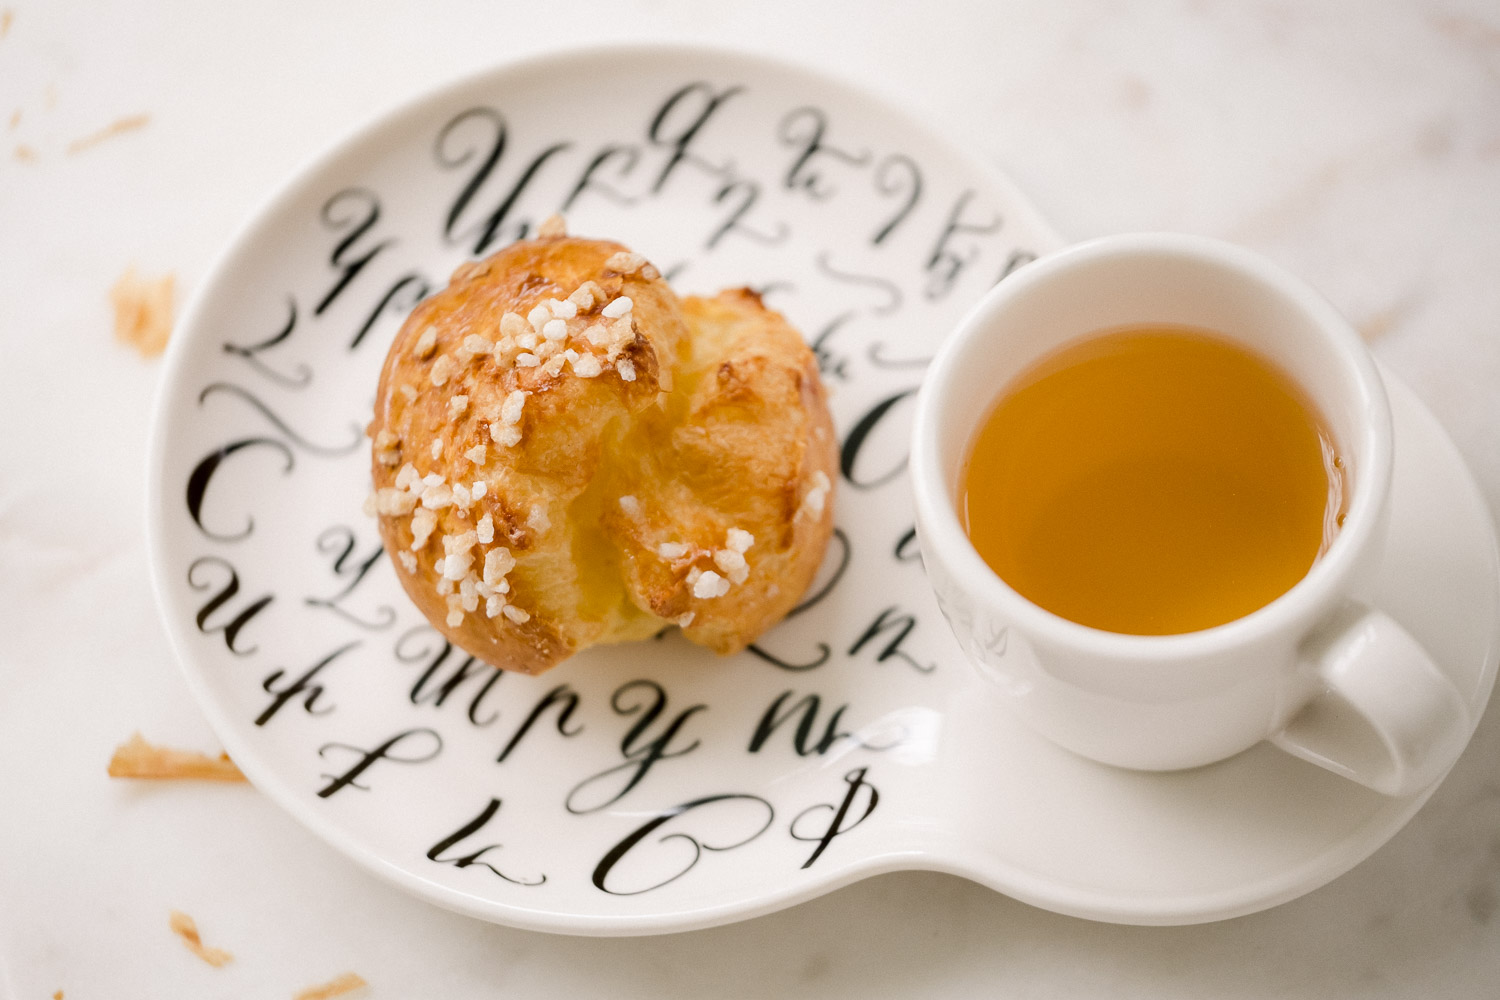 puff pastry on a saucer next to a cup of tea